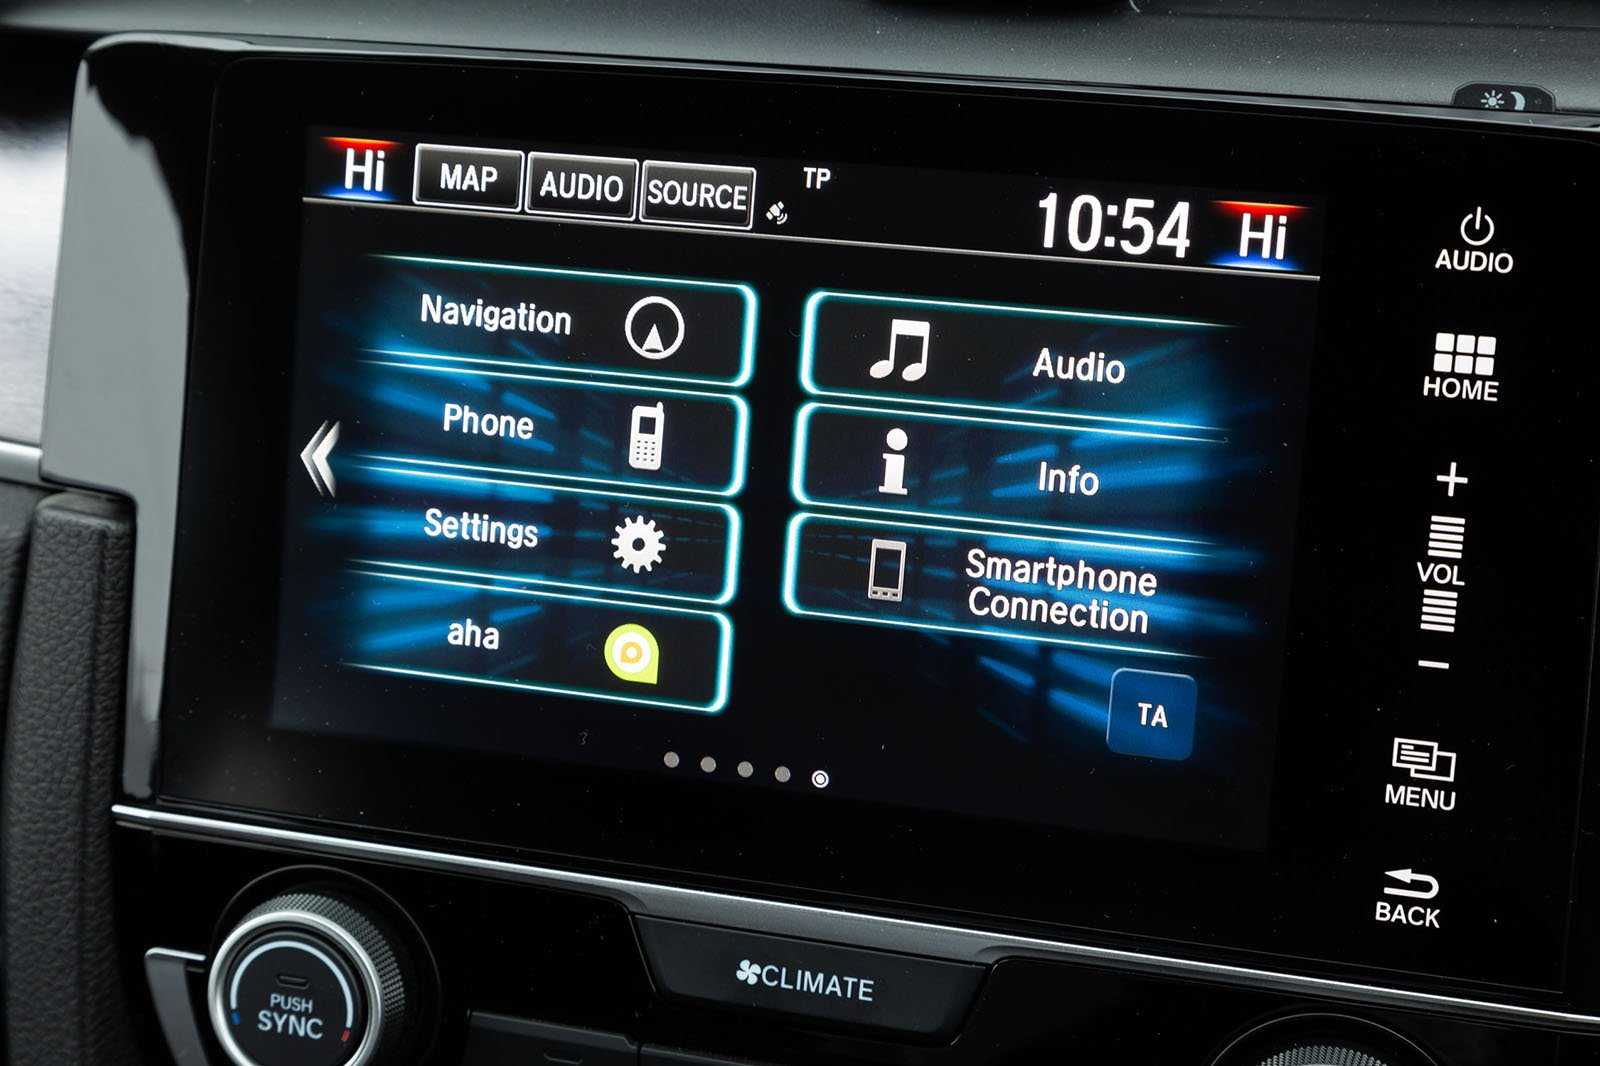 Honda Civic Saloon 2019 infotainment